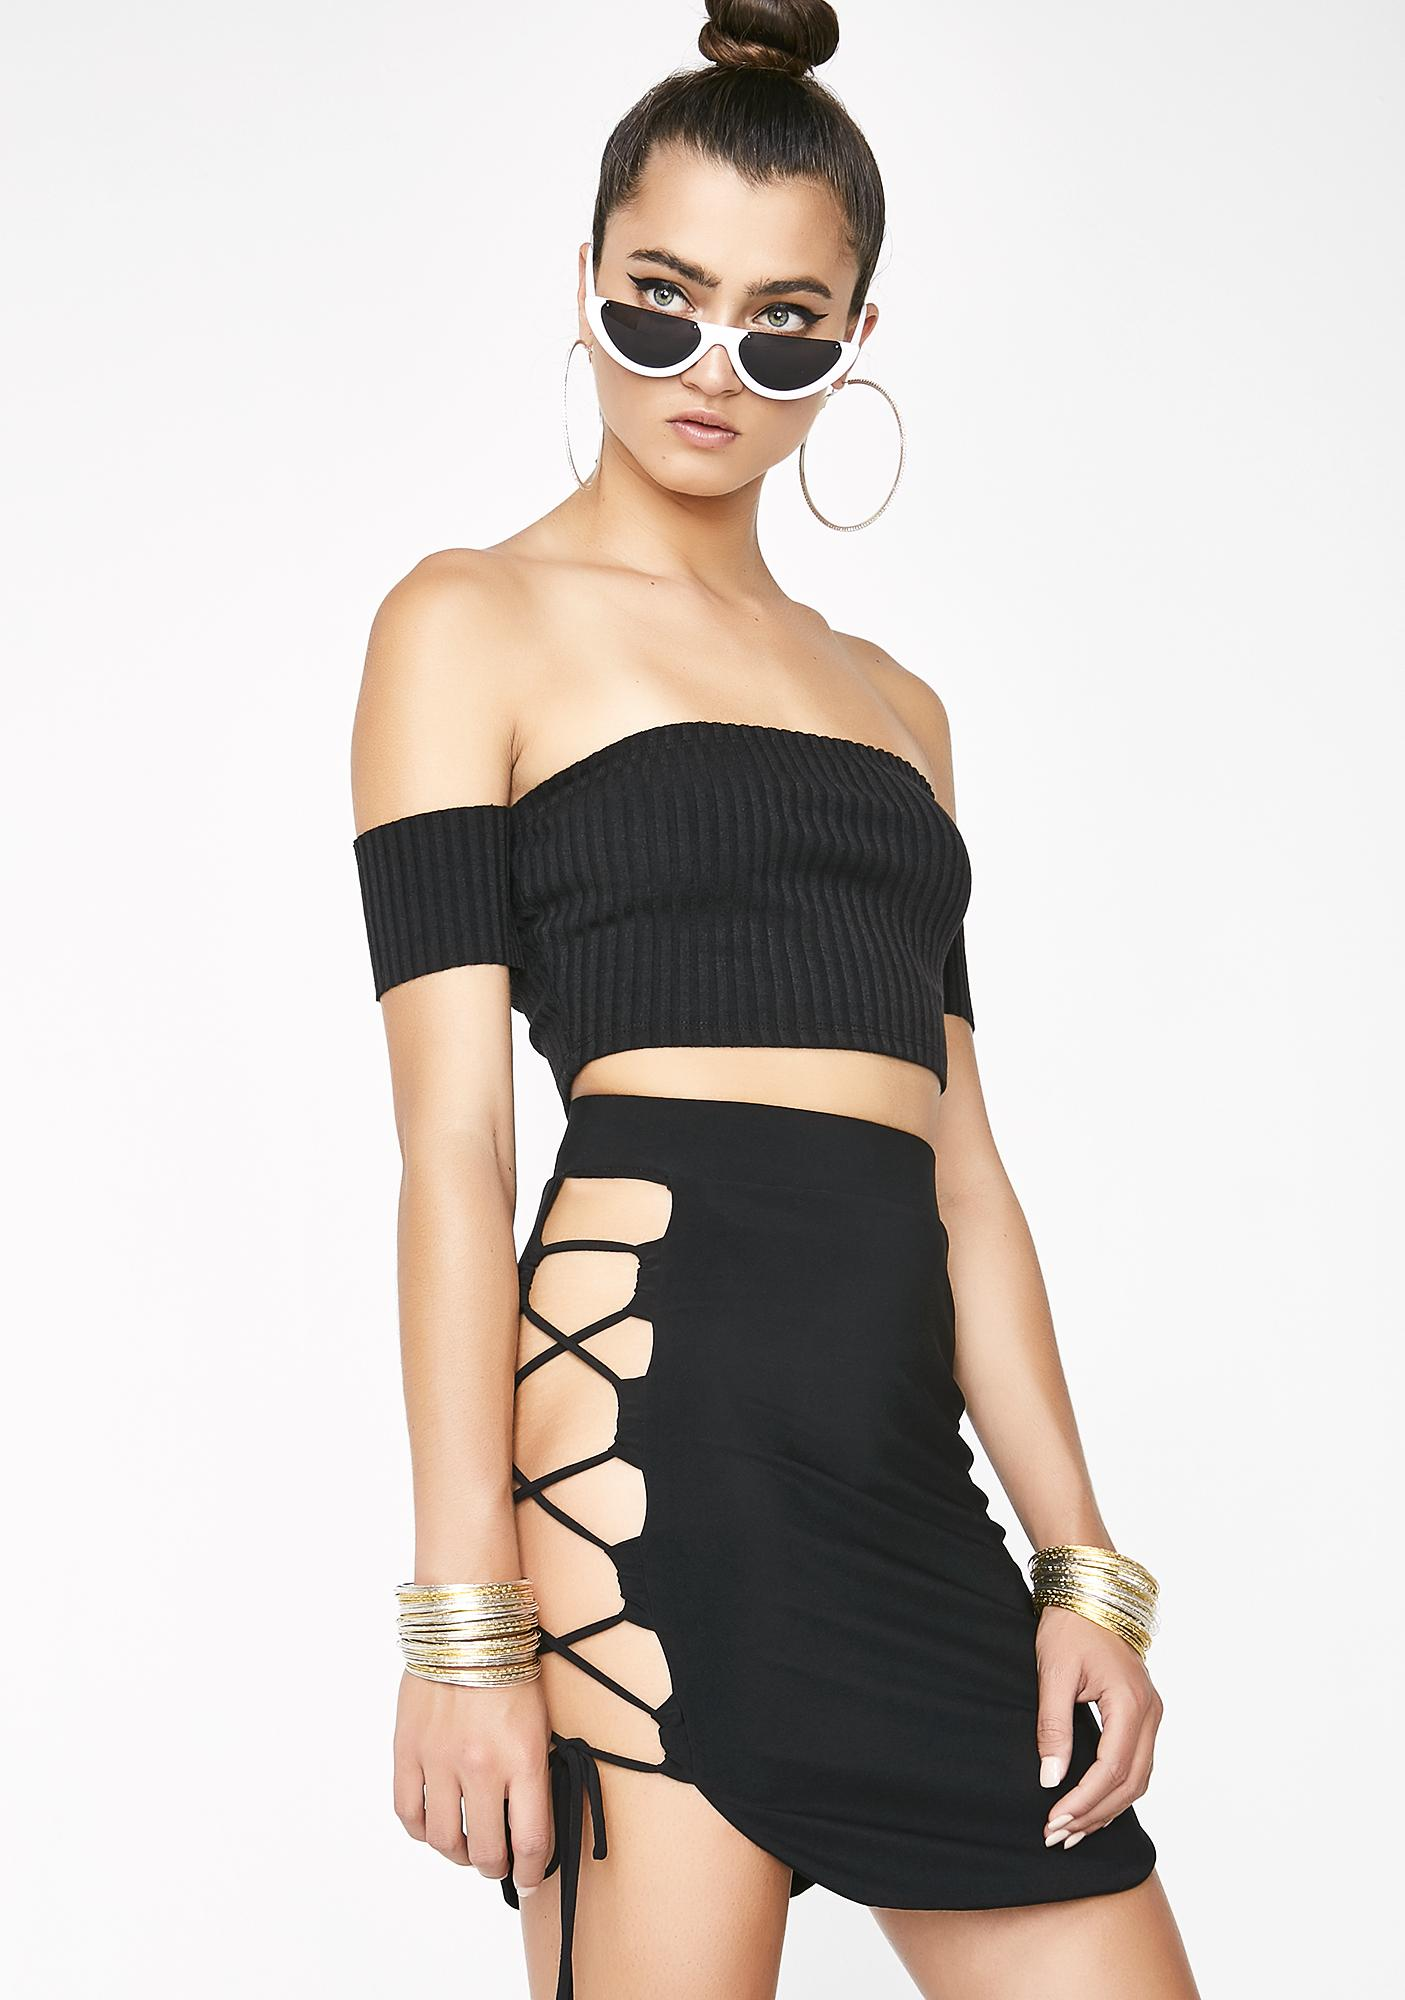 Onyx Got Ur Attention Lace-Up Skirt